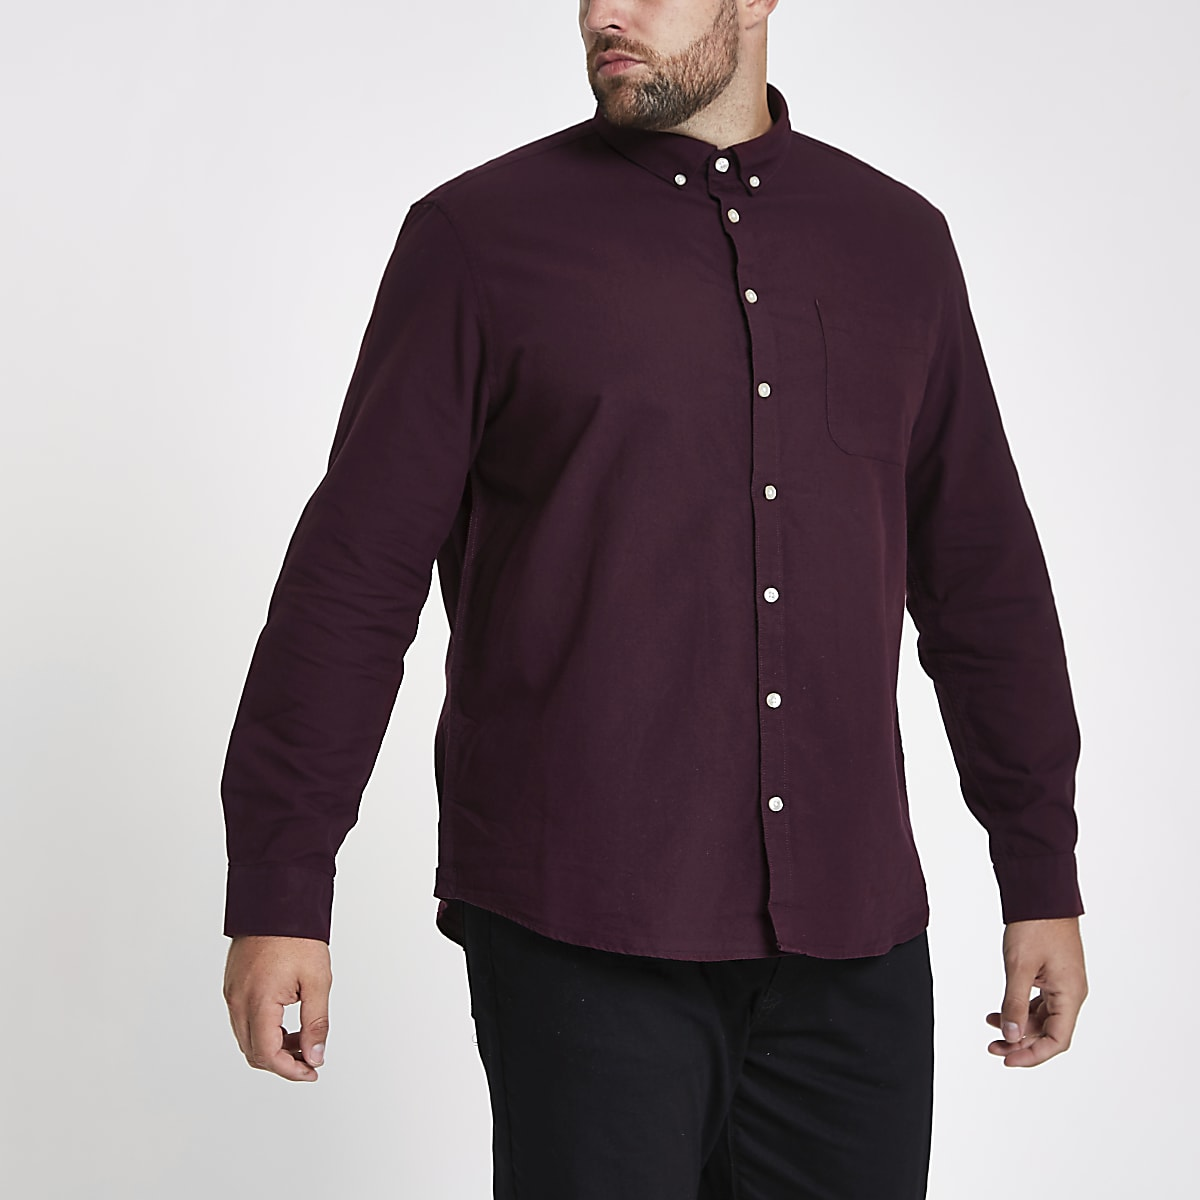 5d346620071 Mens Tall Long Sleeve Shirts - Nils Stucki Kieferorthopäde